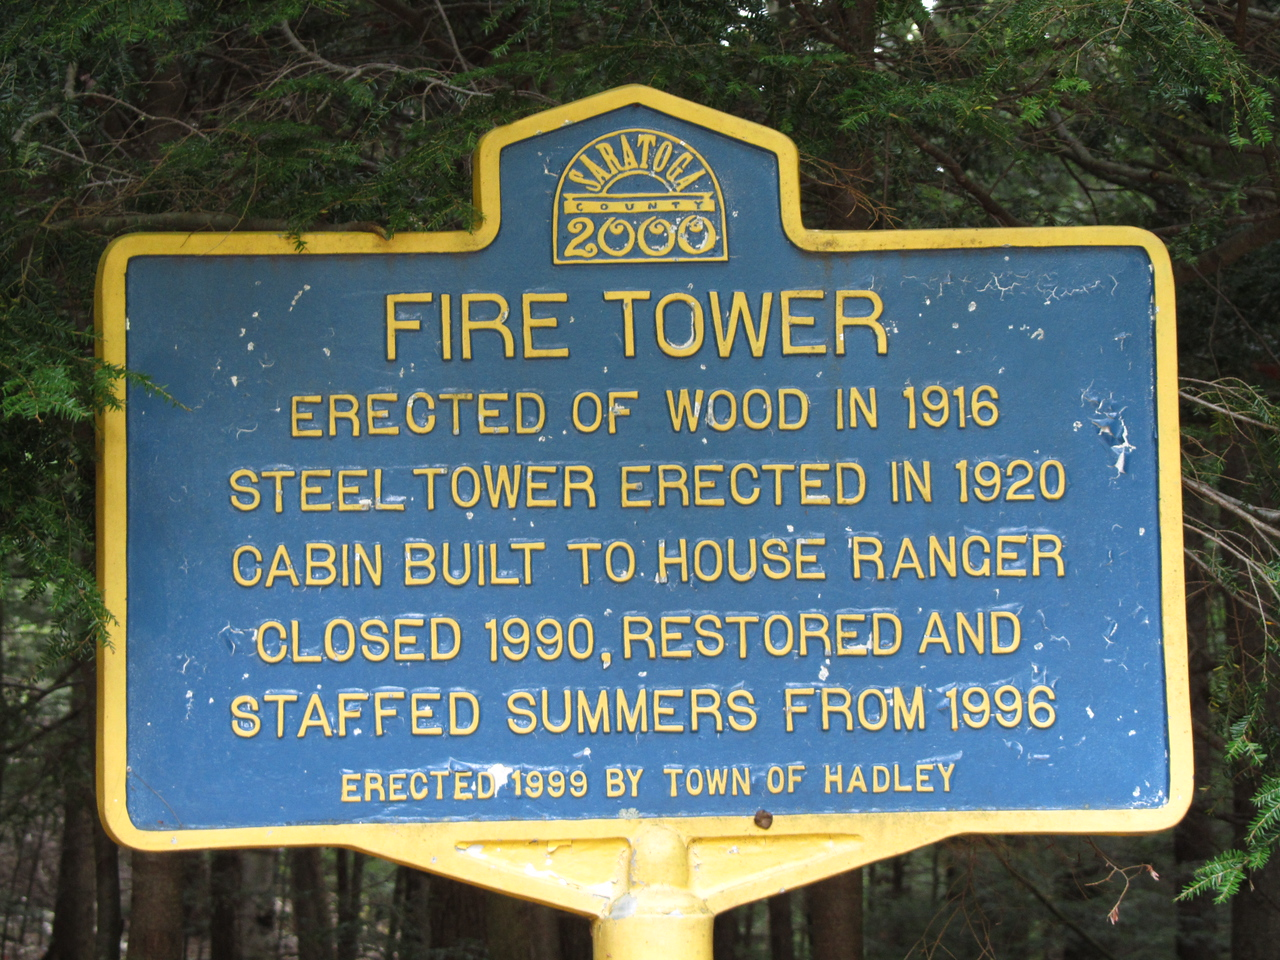 The historical sign at the trailhead. Interesting that it was manned up until 1990 even with satellite and planes.